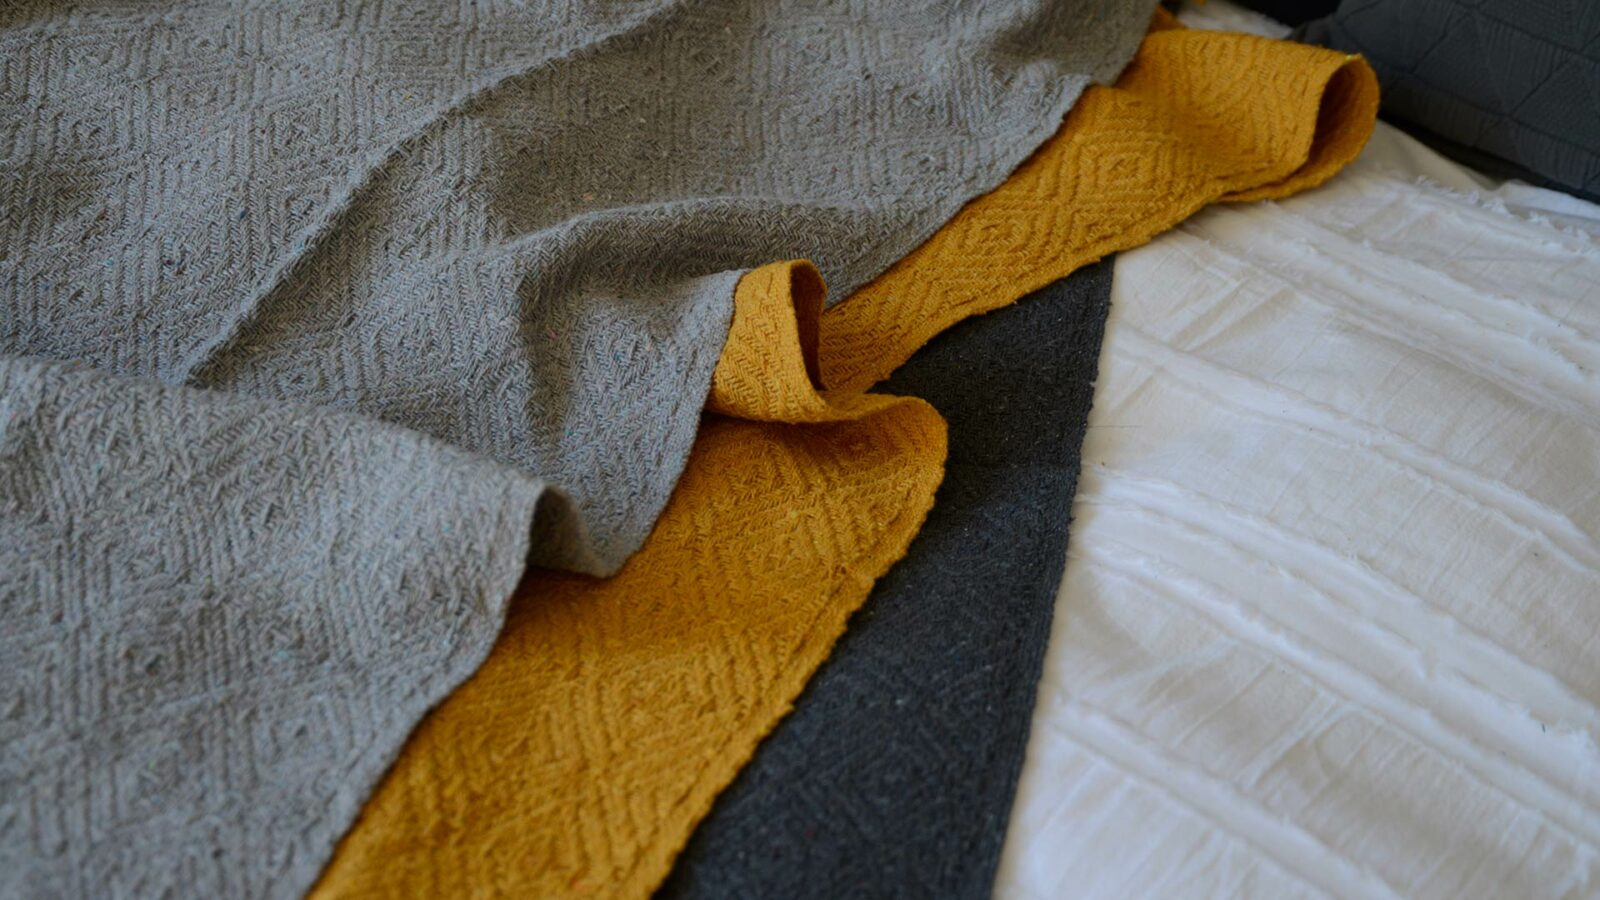 diamond weave cotton throws in 3 colour ways shown close up